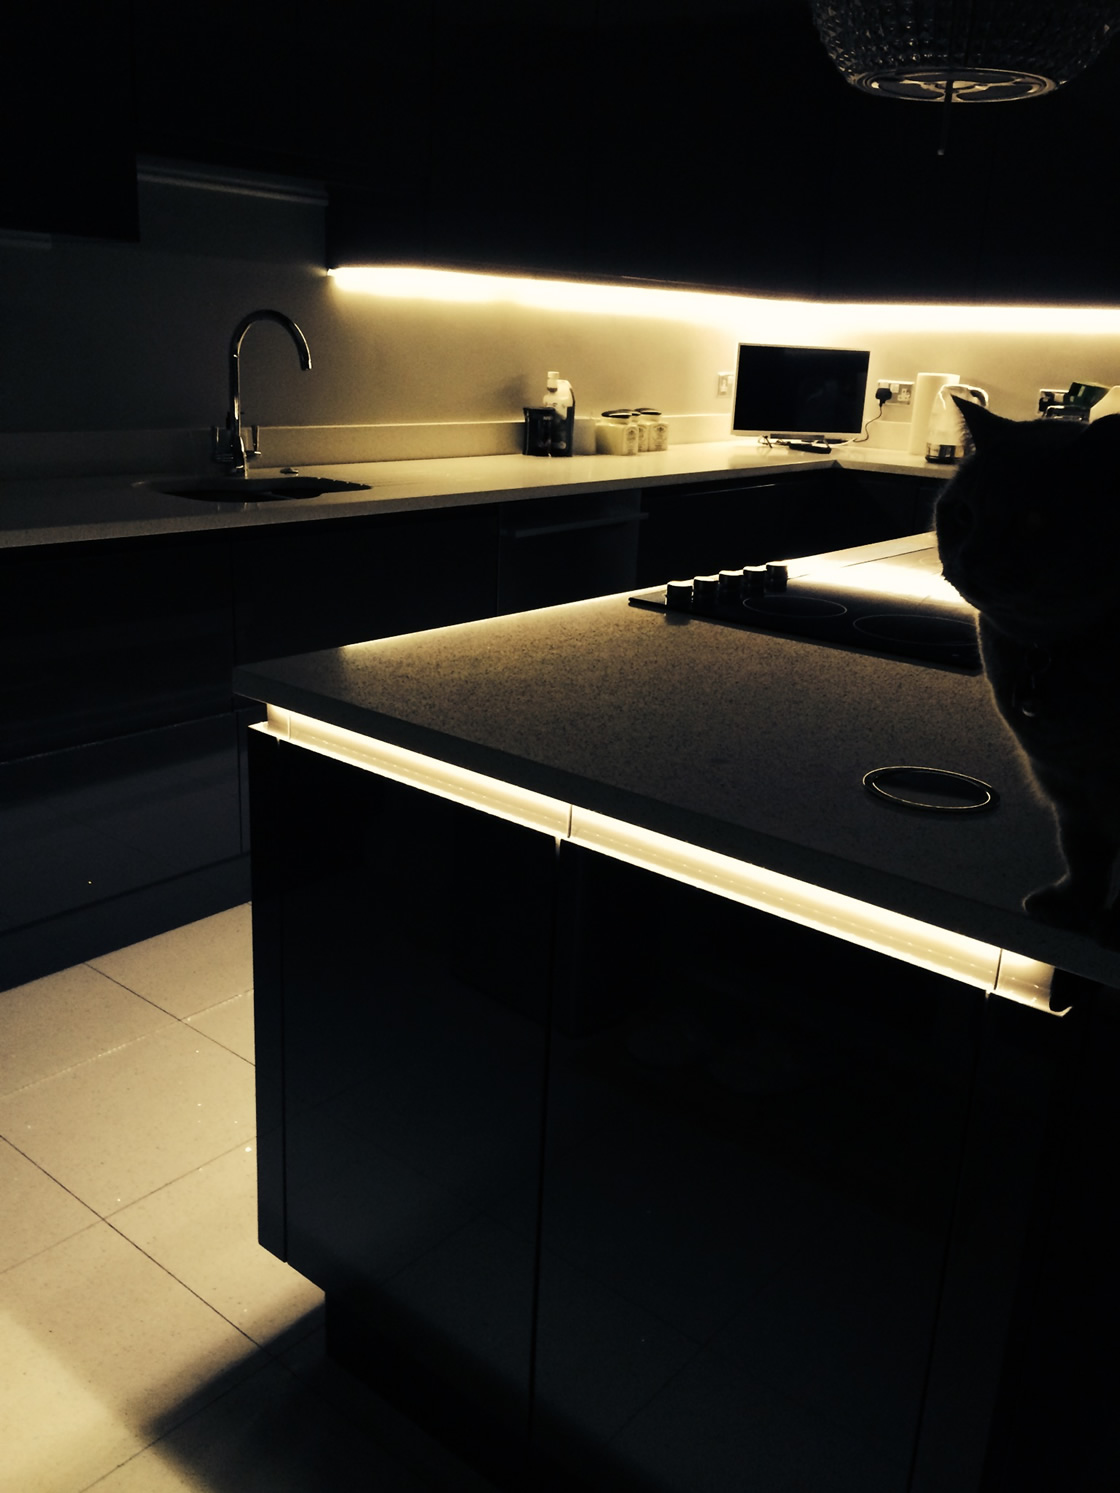 Handles-less Kitchen View of Lighting in the Dark